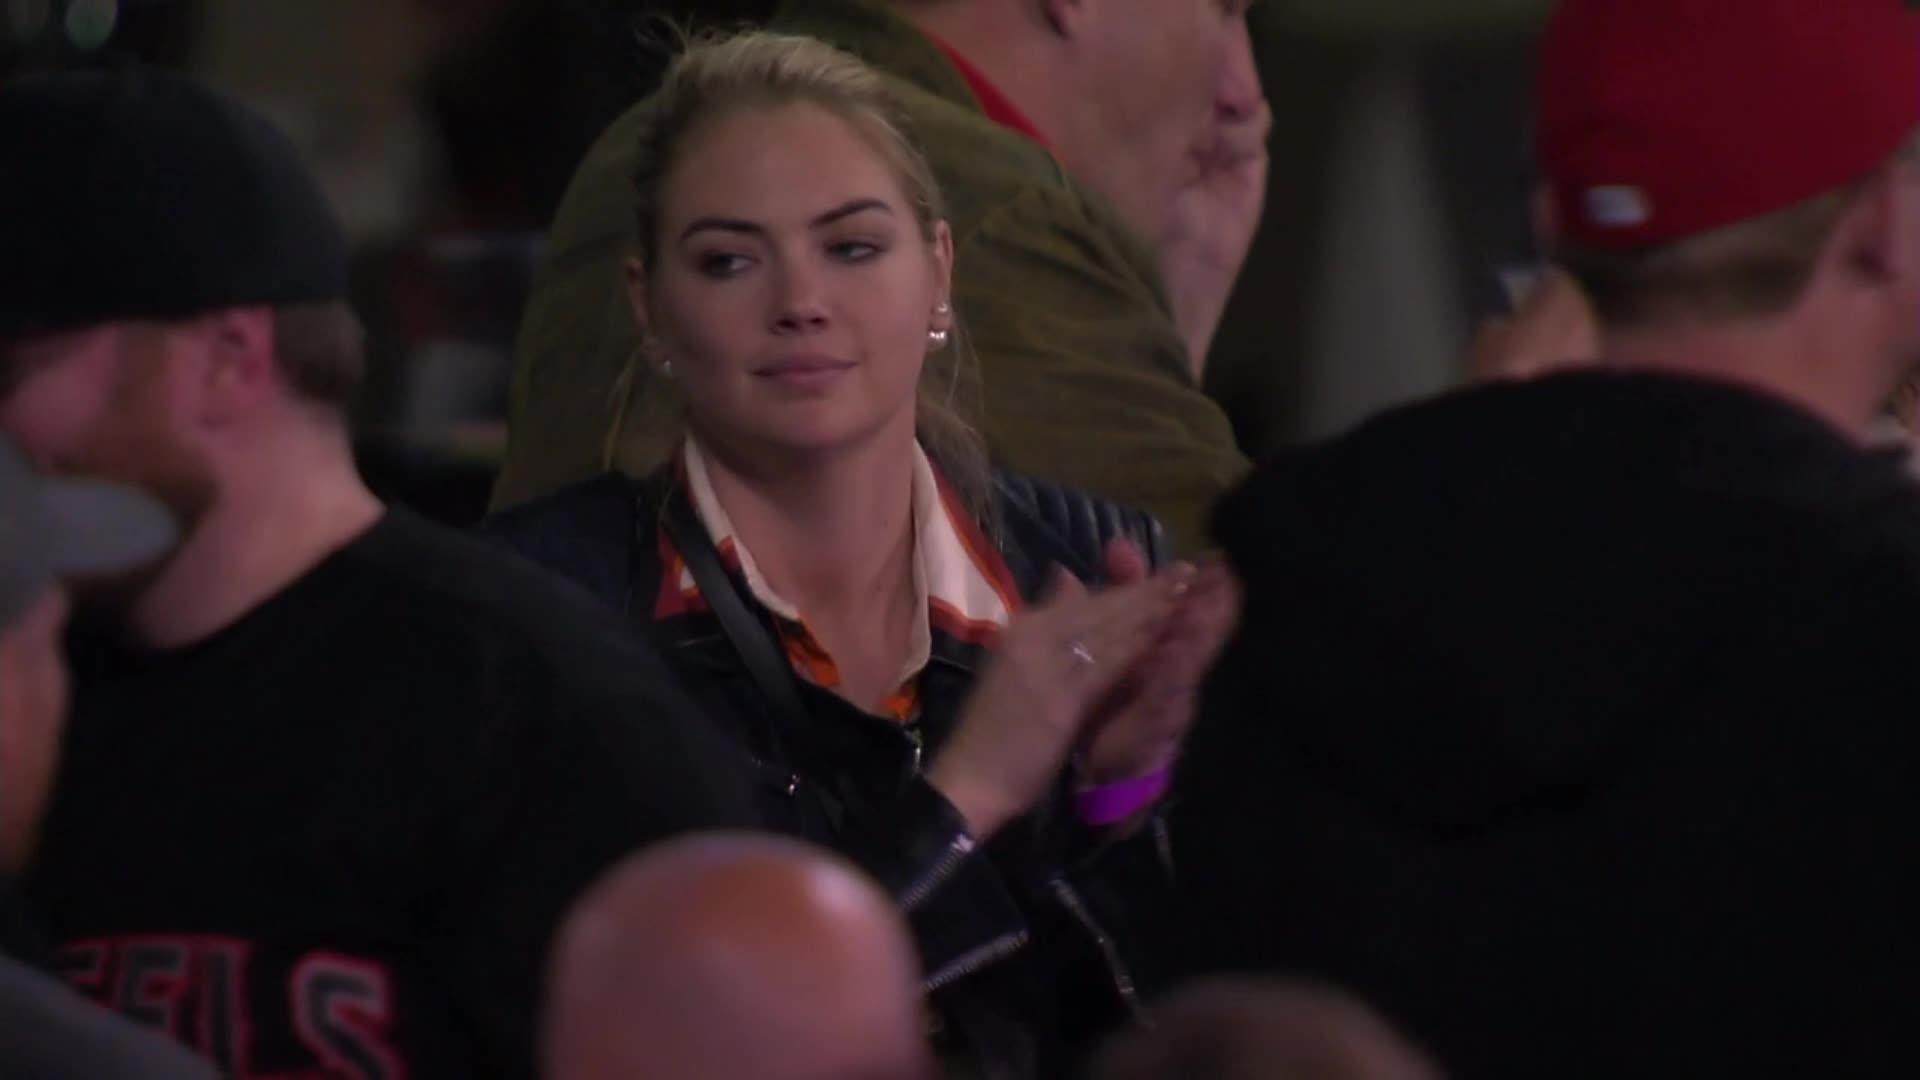 kate upton, Kate Upton Astros vs Angels GIFs